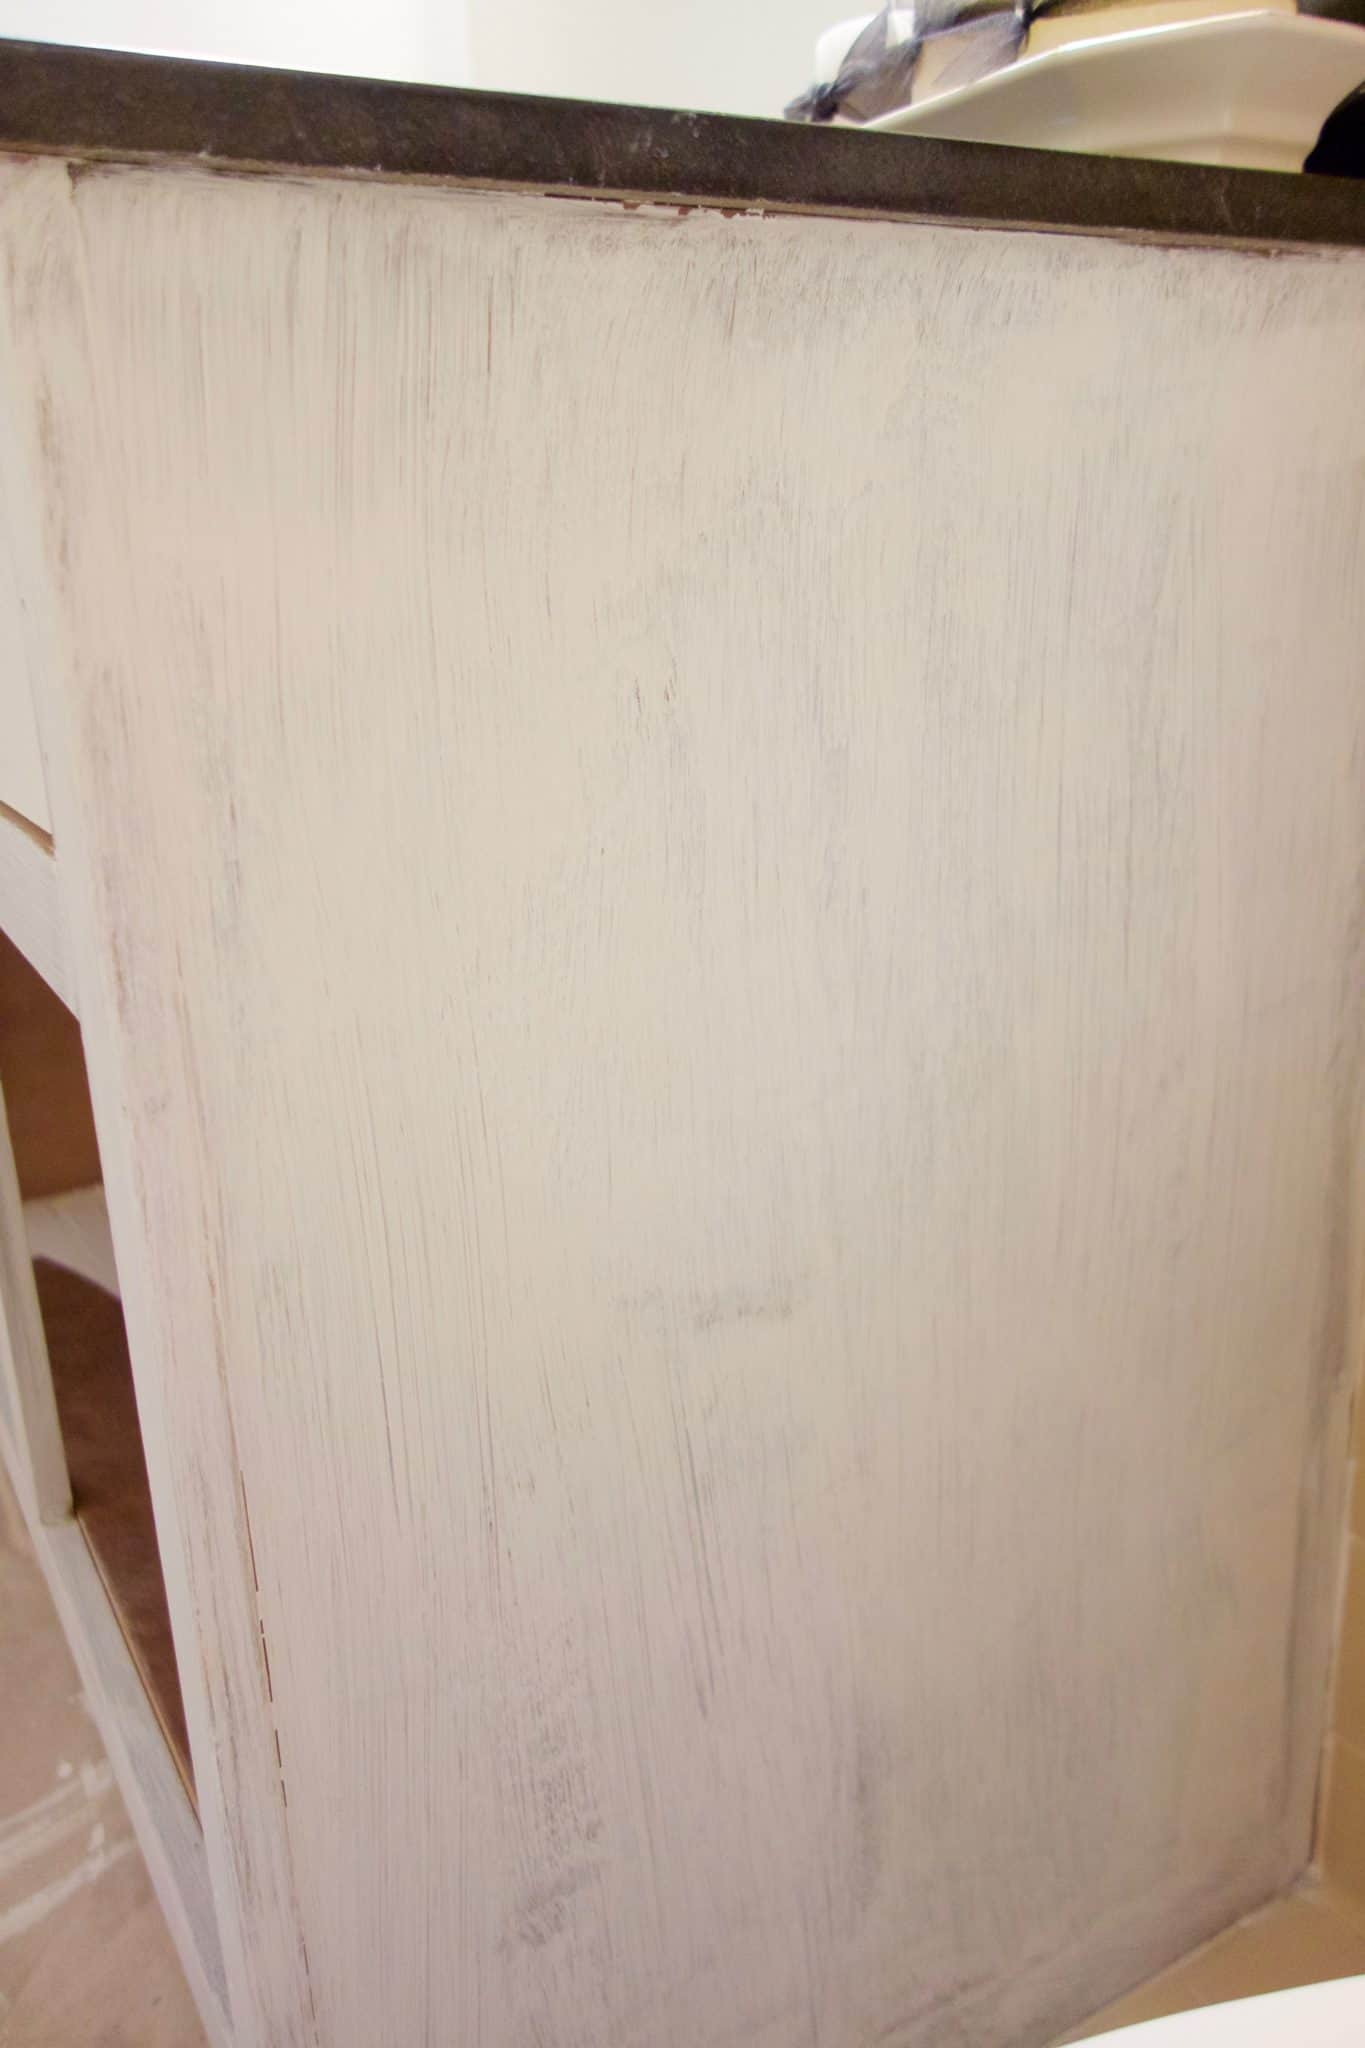 How to Paint Cabinets Without Sanding - Health, Home, and Heart